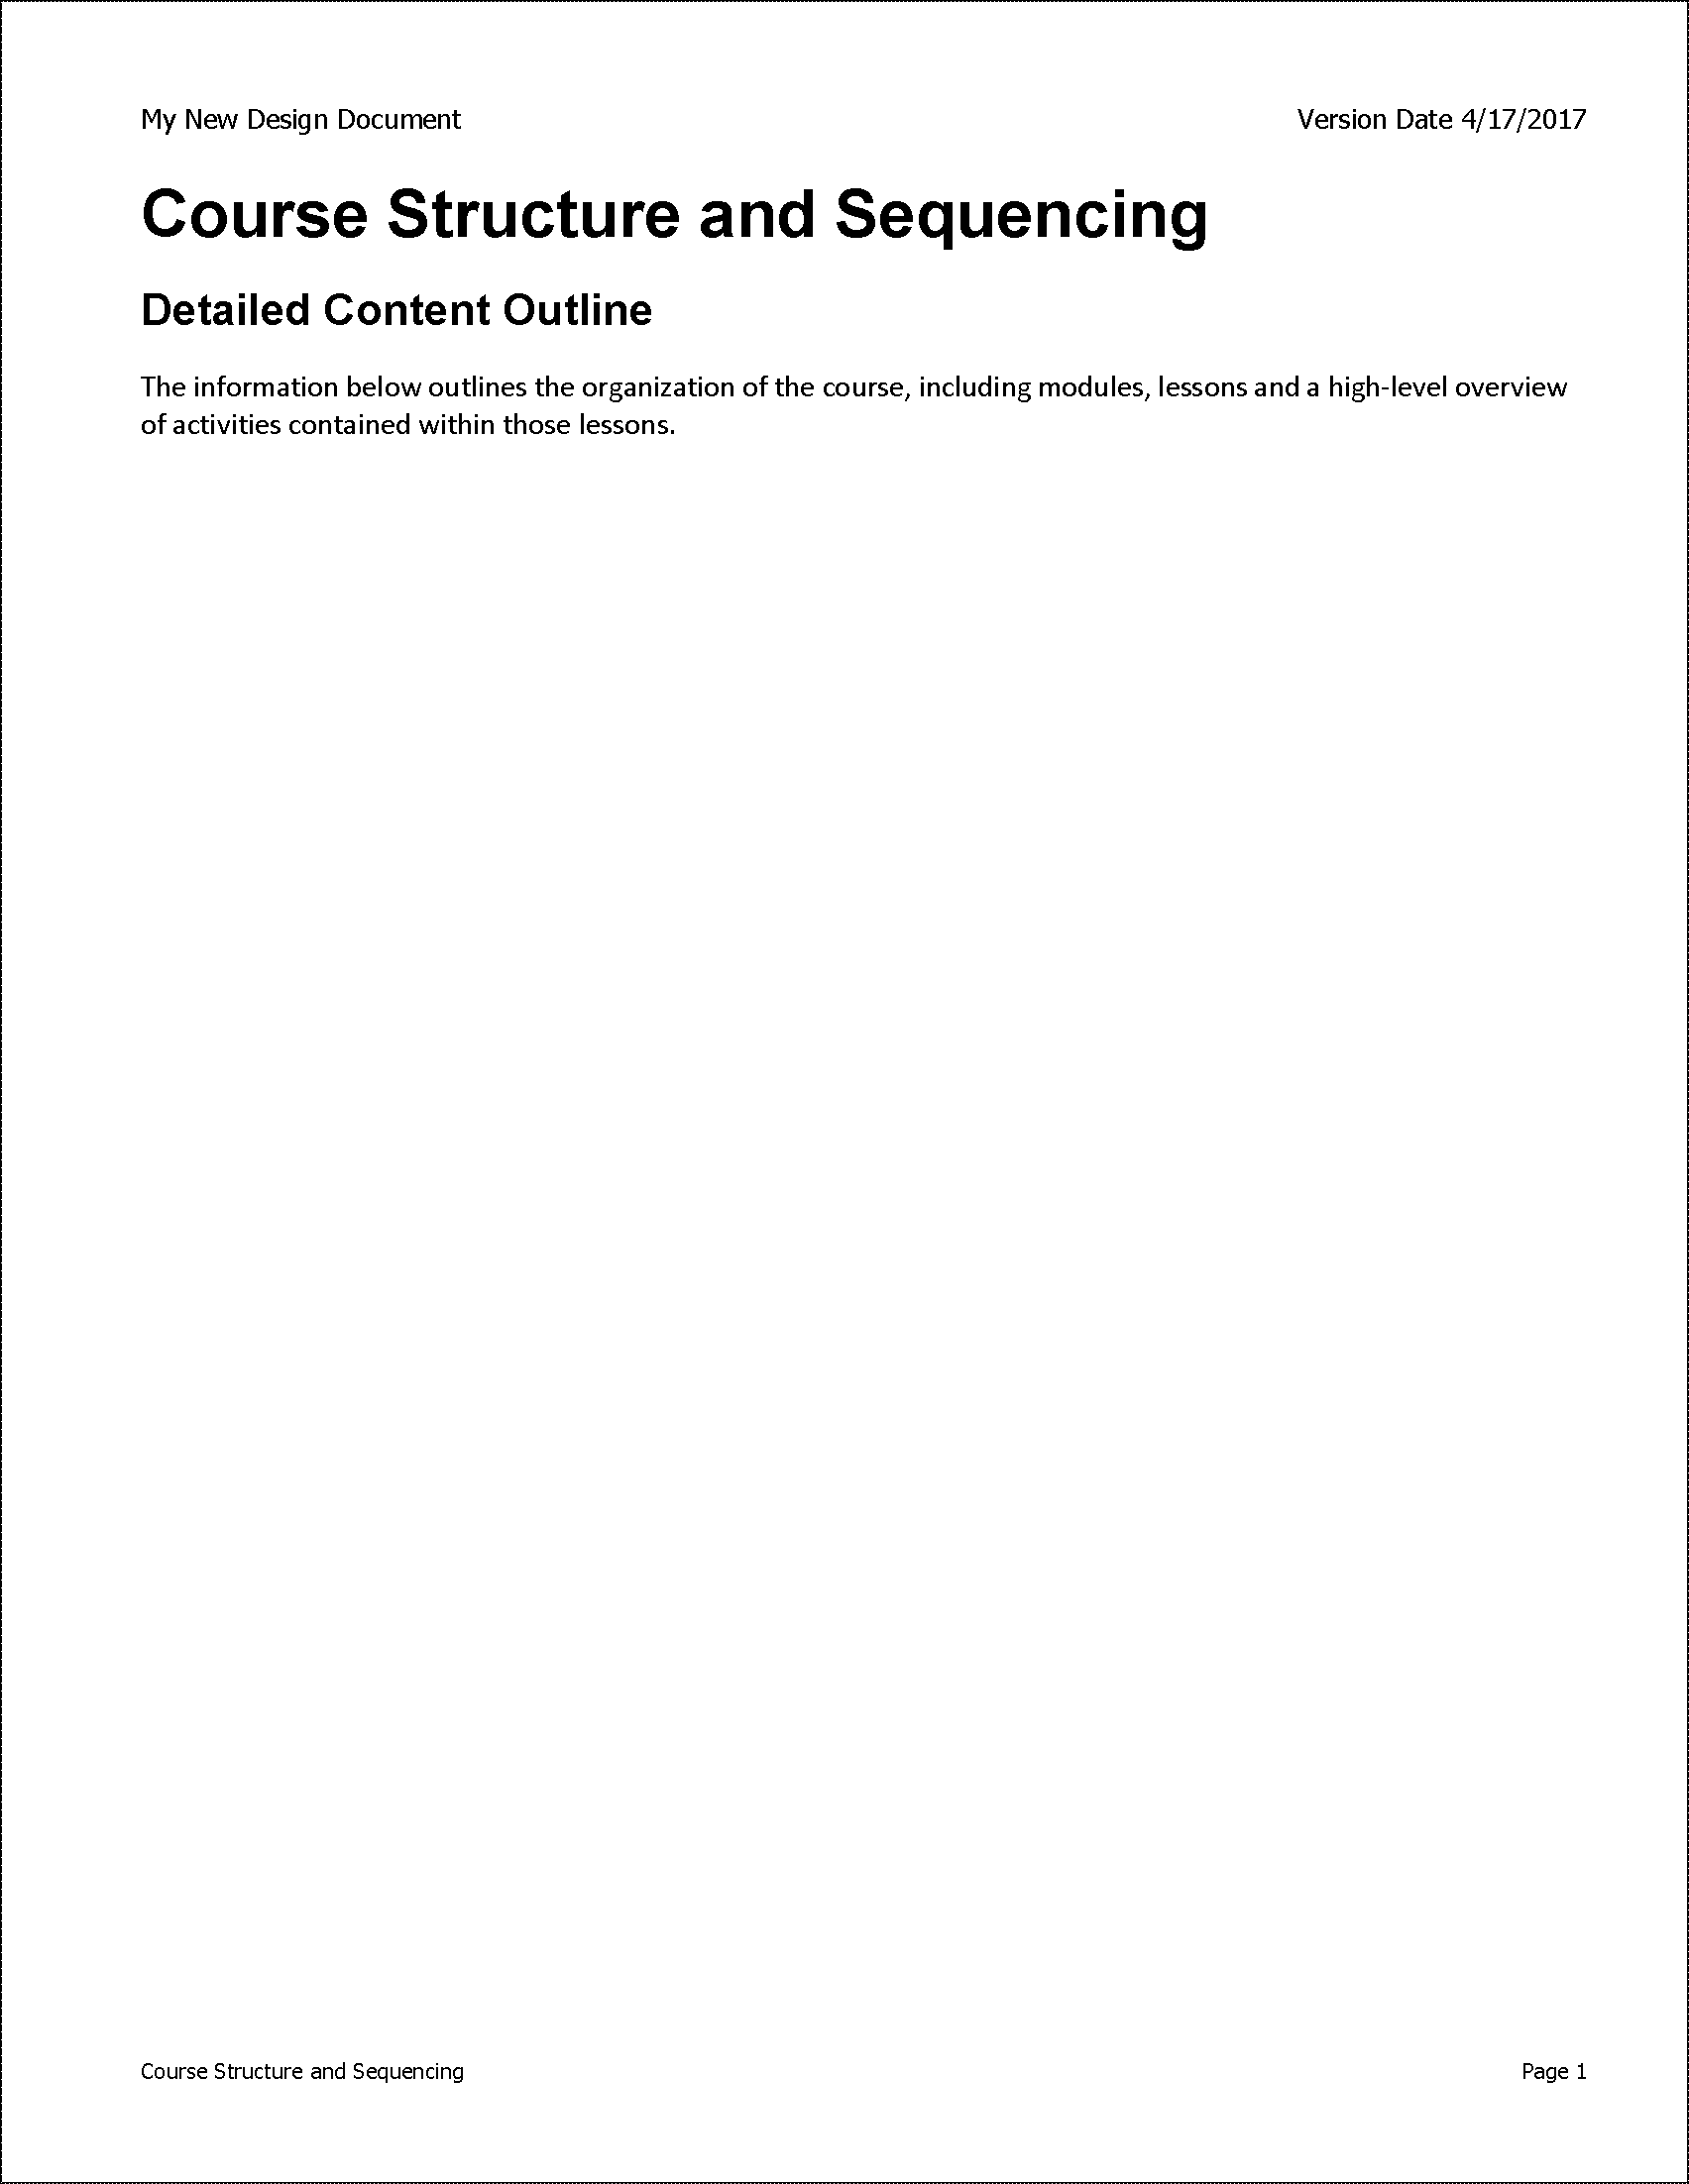 4-17-17-My New Design Document_Page_7.png